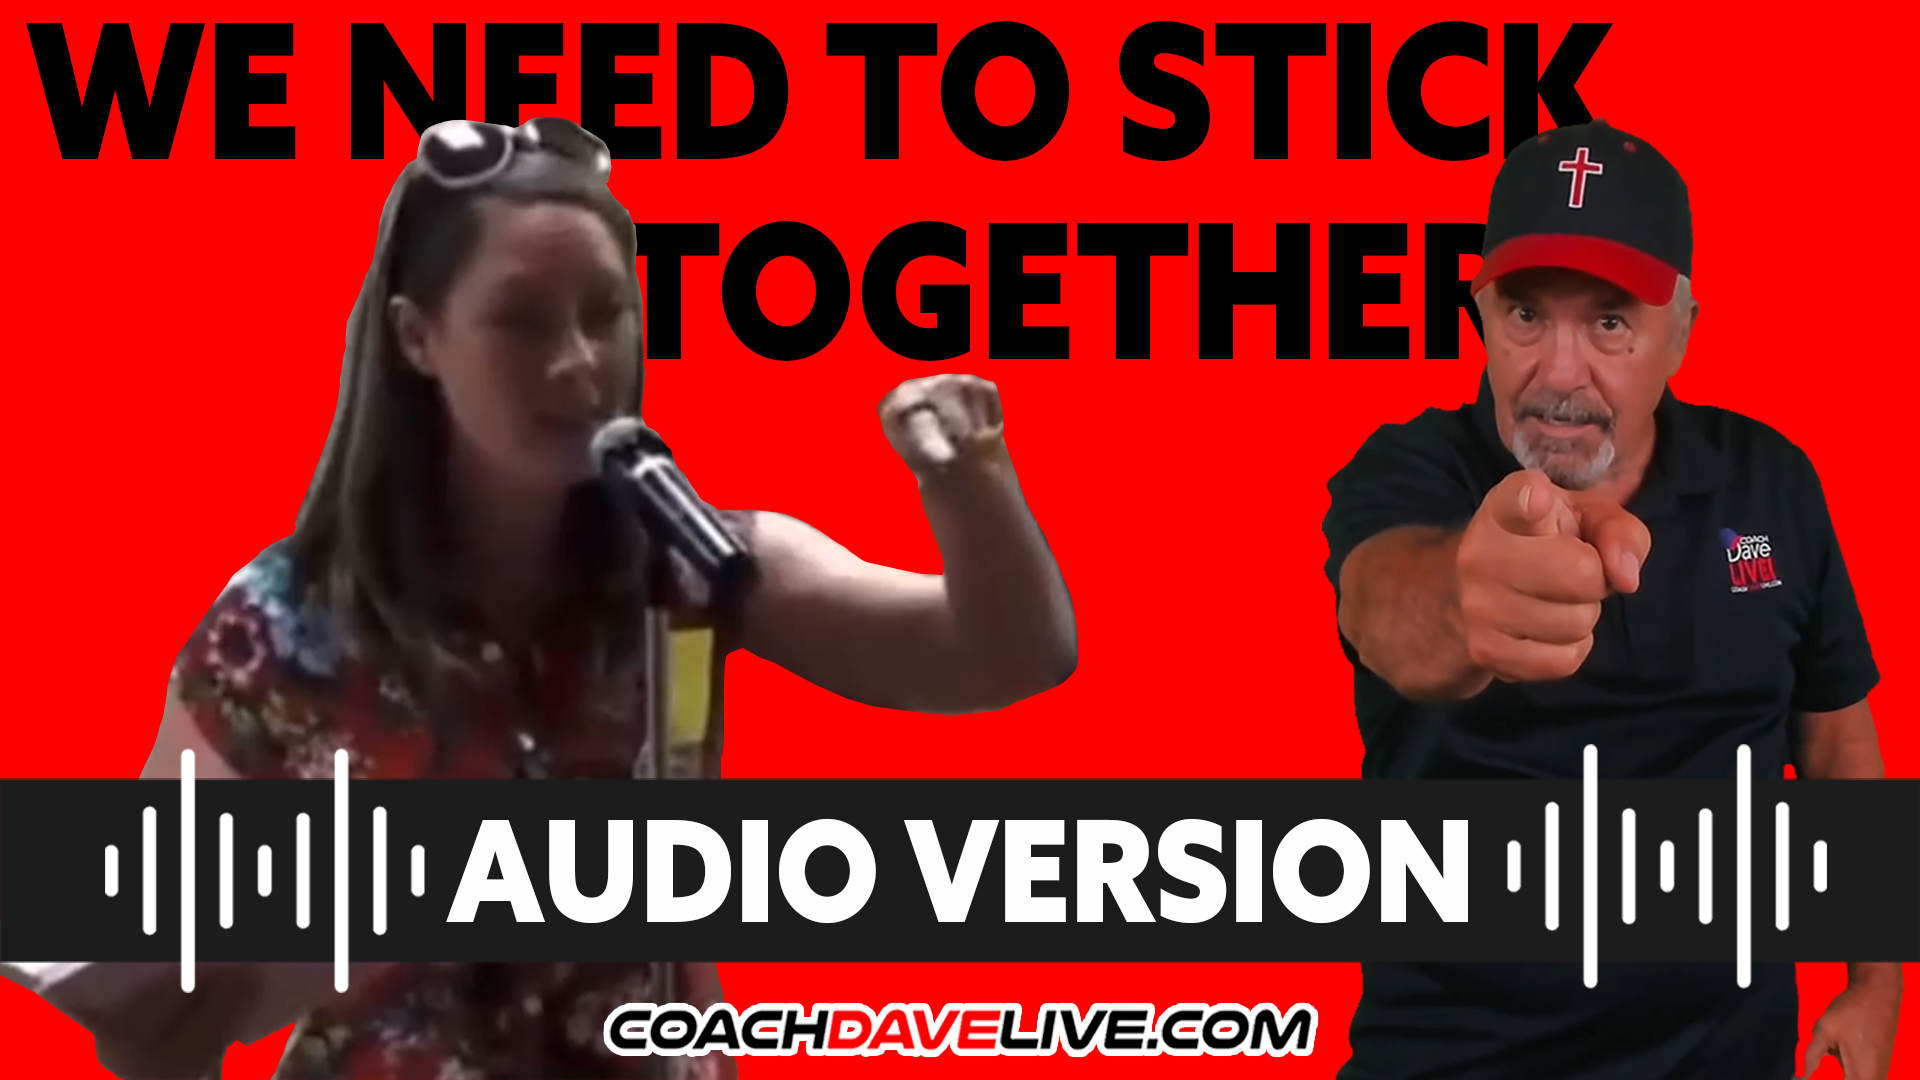 We Need to Stick Together   Coach Dave LIVE   10-8-2021 - AUDIO ONLY